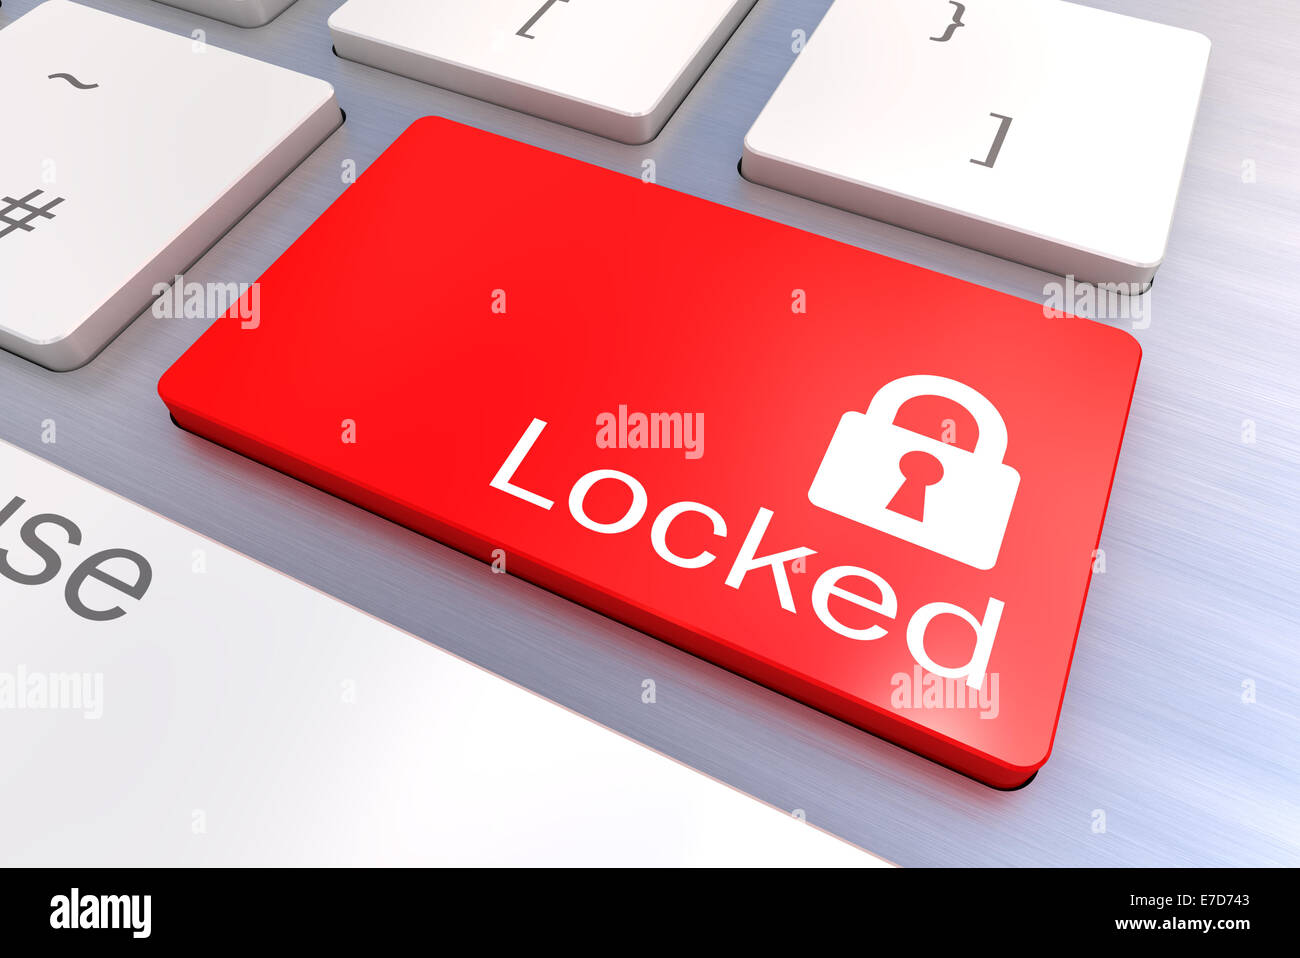 A Colourful 3d Rendered Illustration showing a Unlocked Security concept on a Computer Keyboard - Stock Image